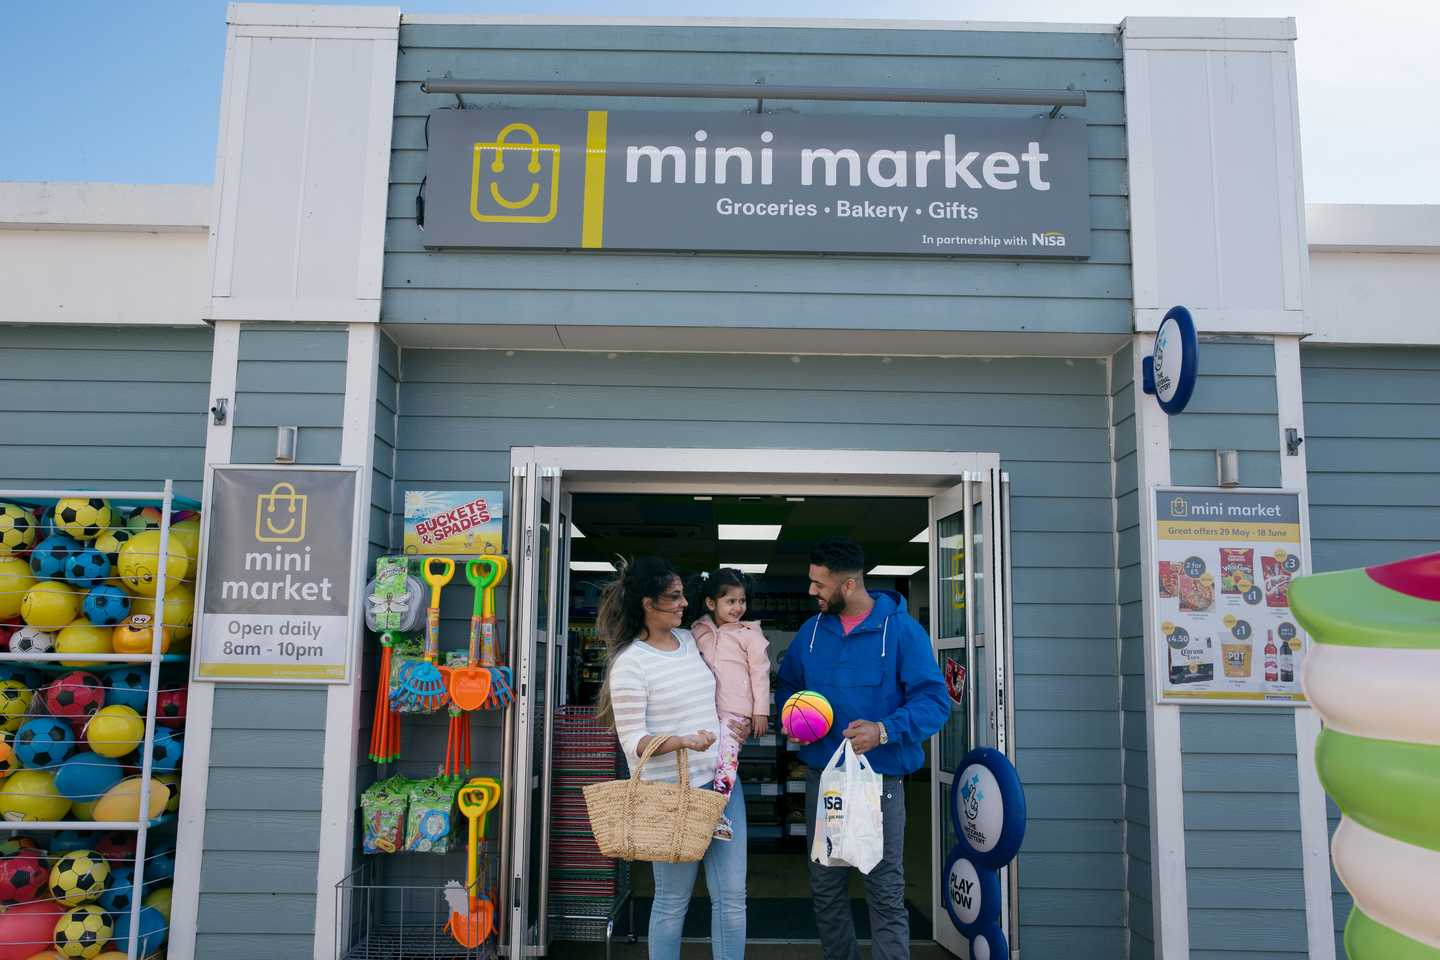 Guests exiting the Mini Market convenience store on park